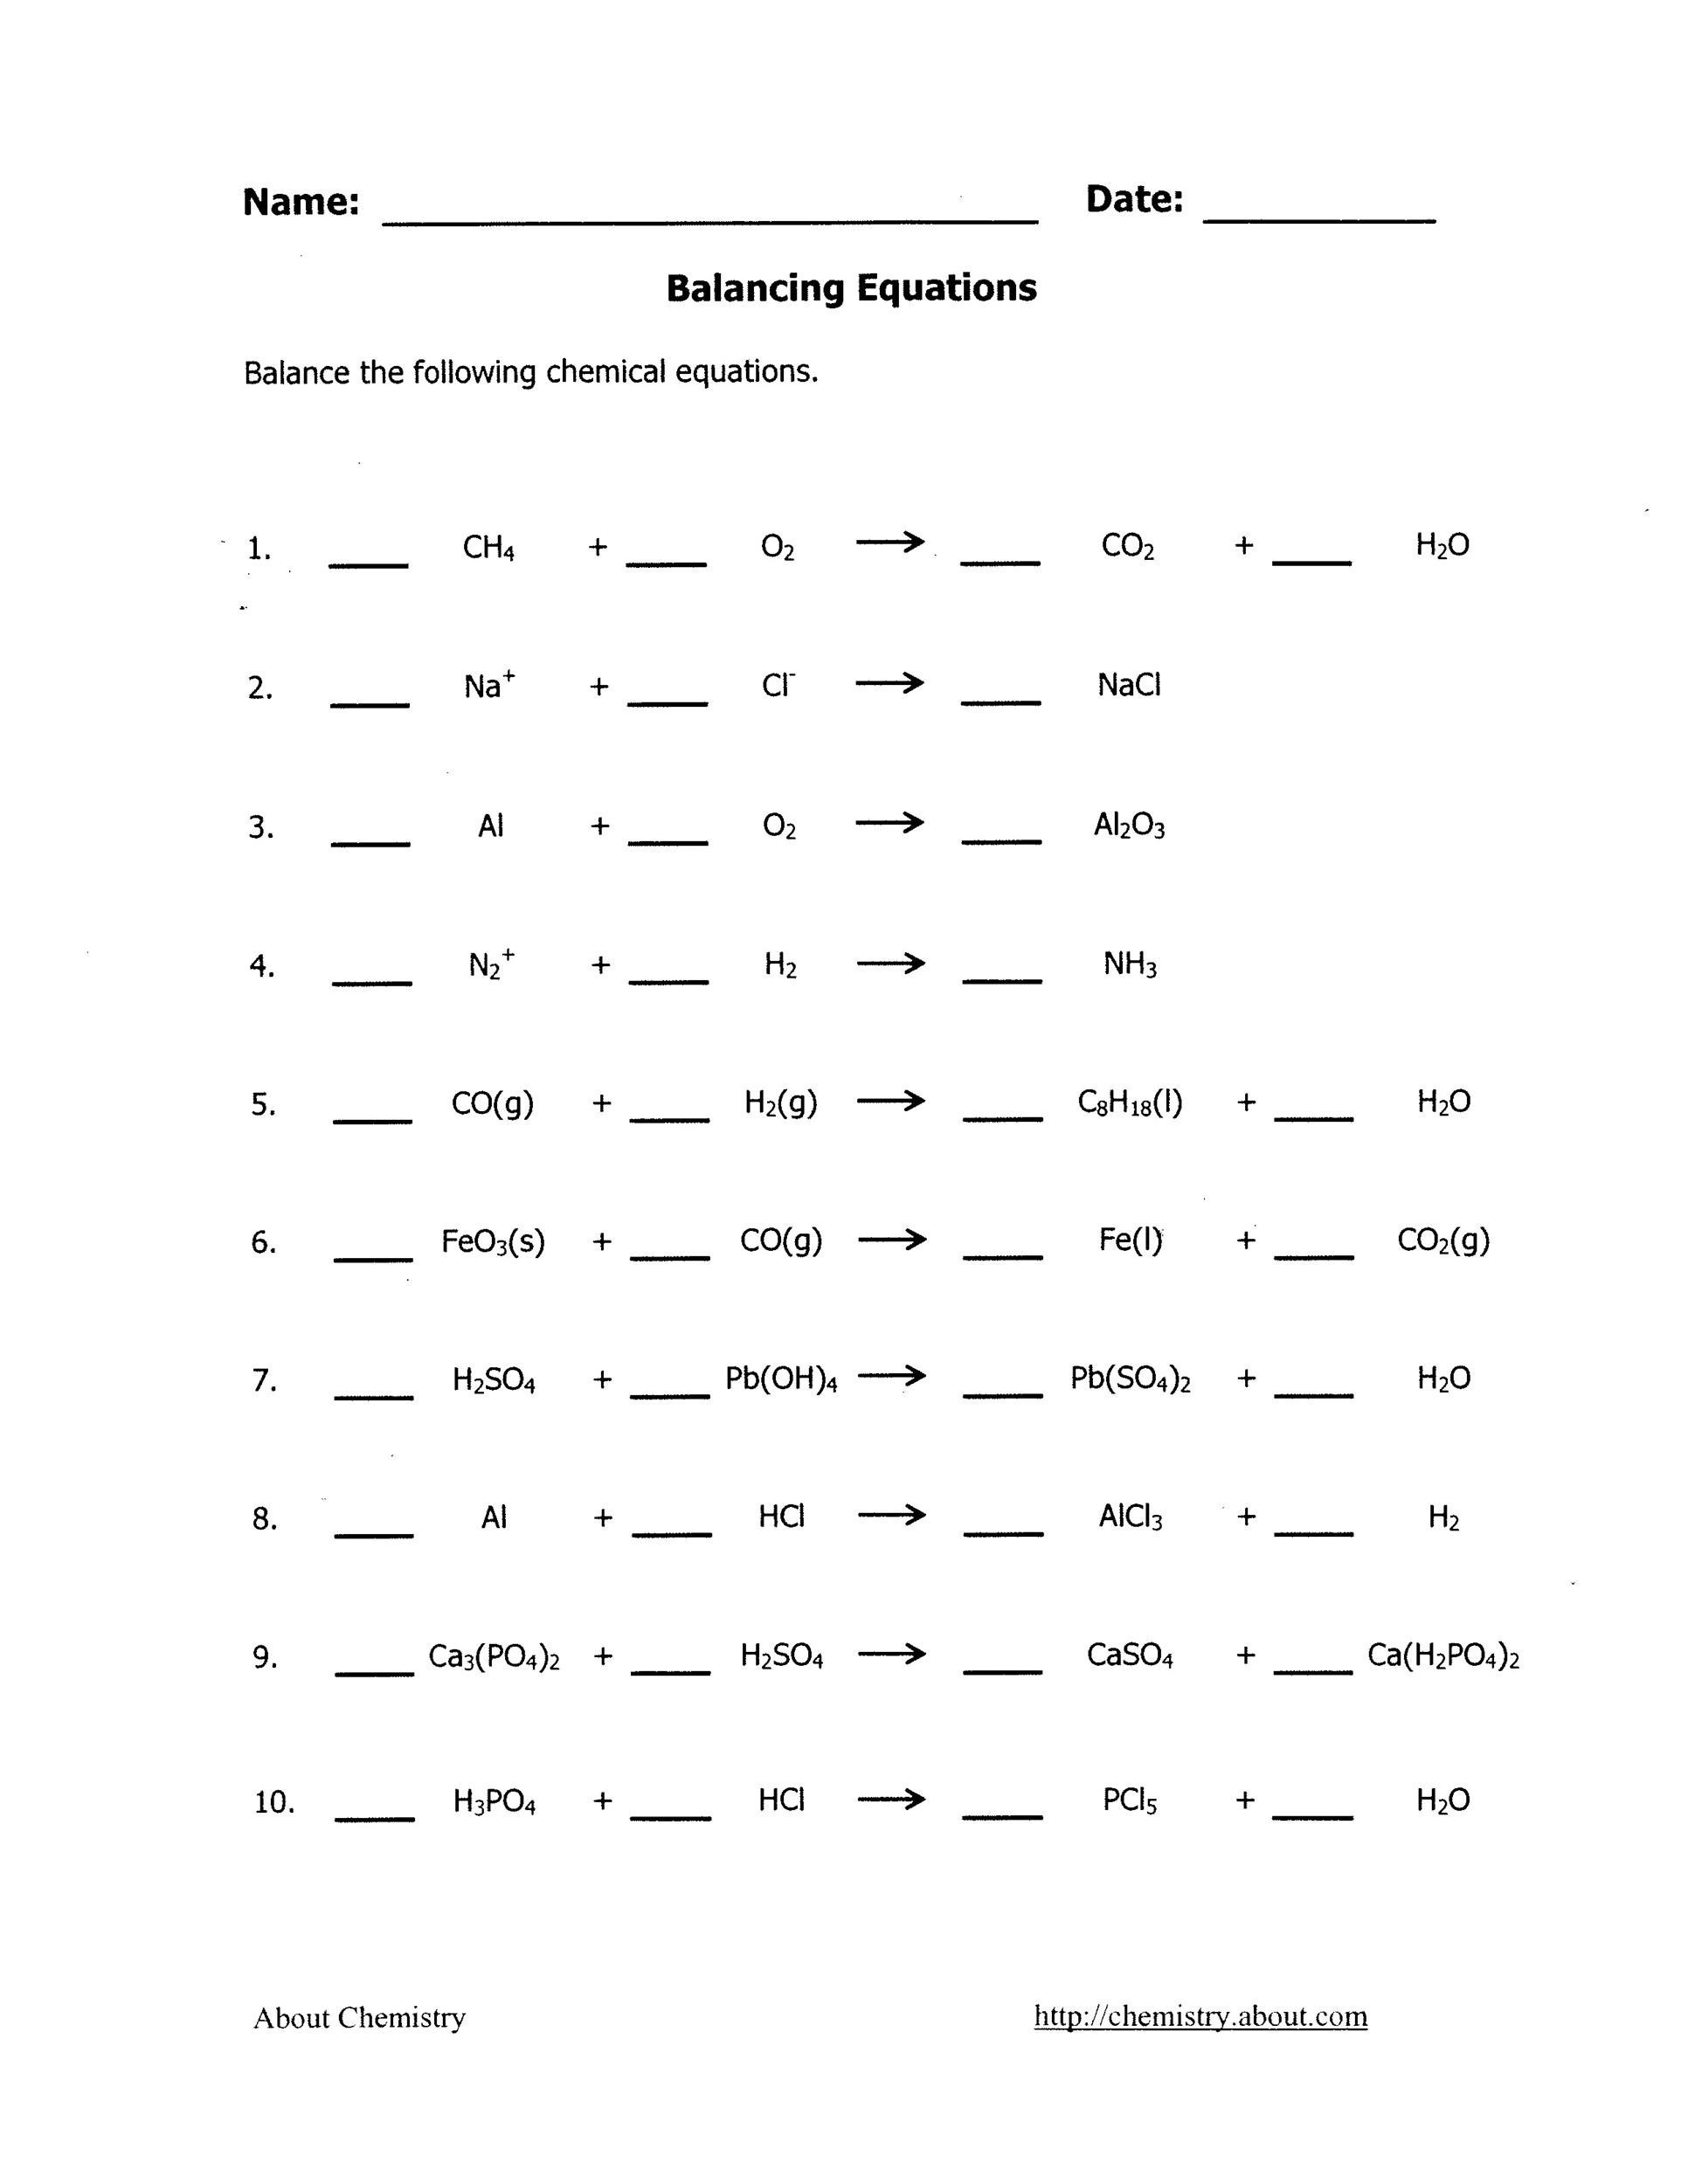 Worksheet 2 Balance The Following Chemical Equations Where